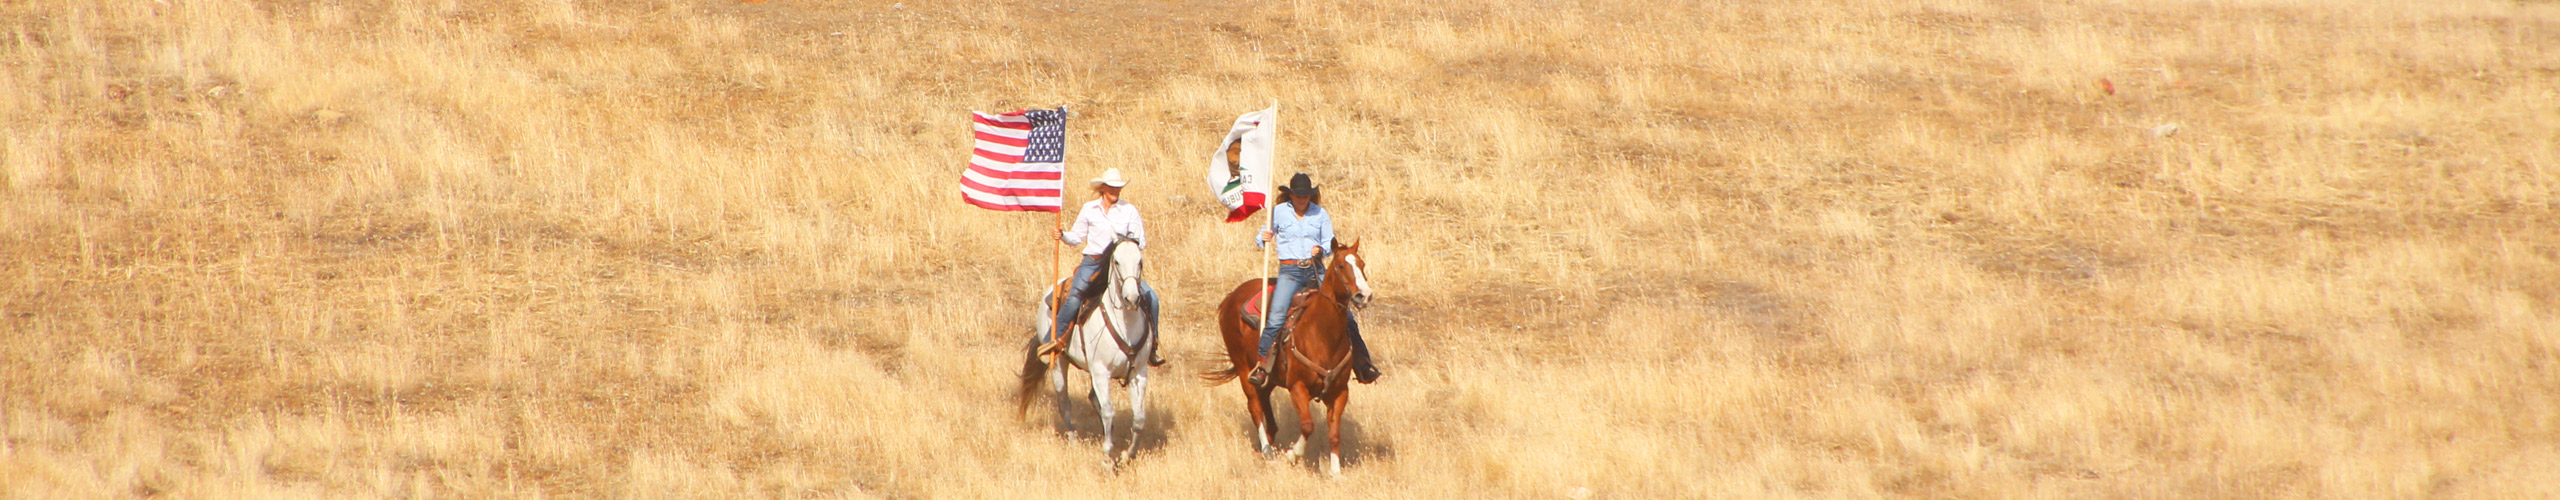 Parkfield_Rodeo_Flags